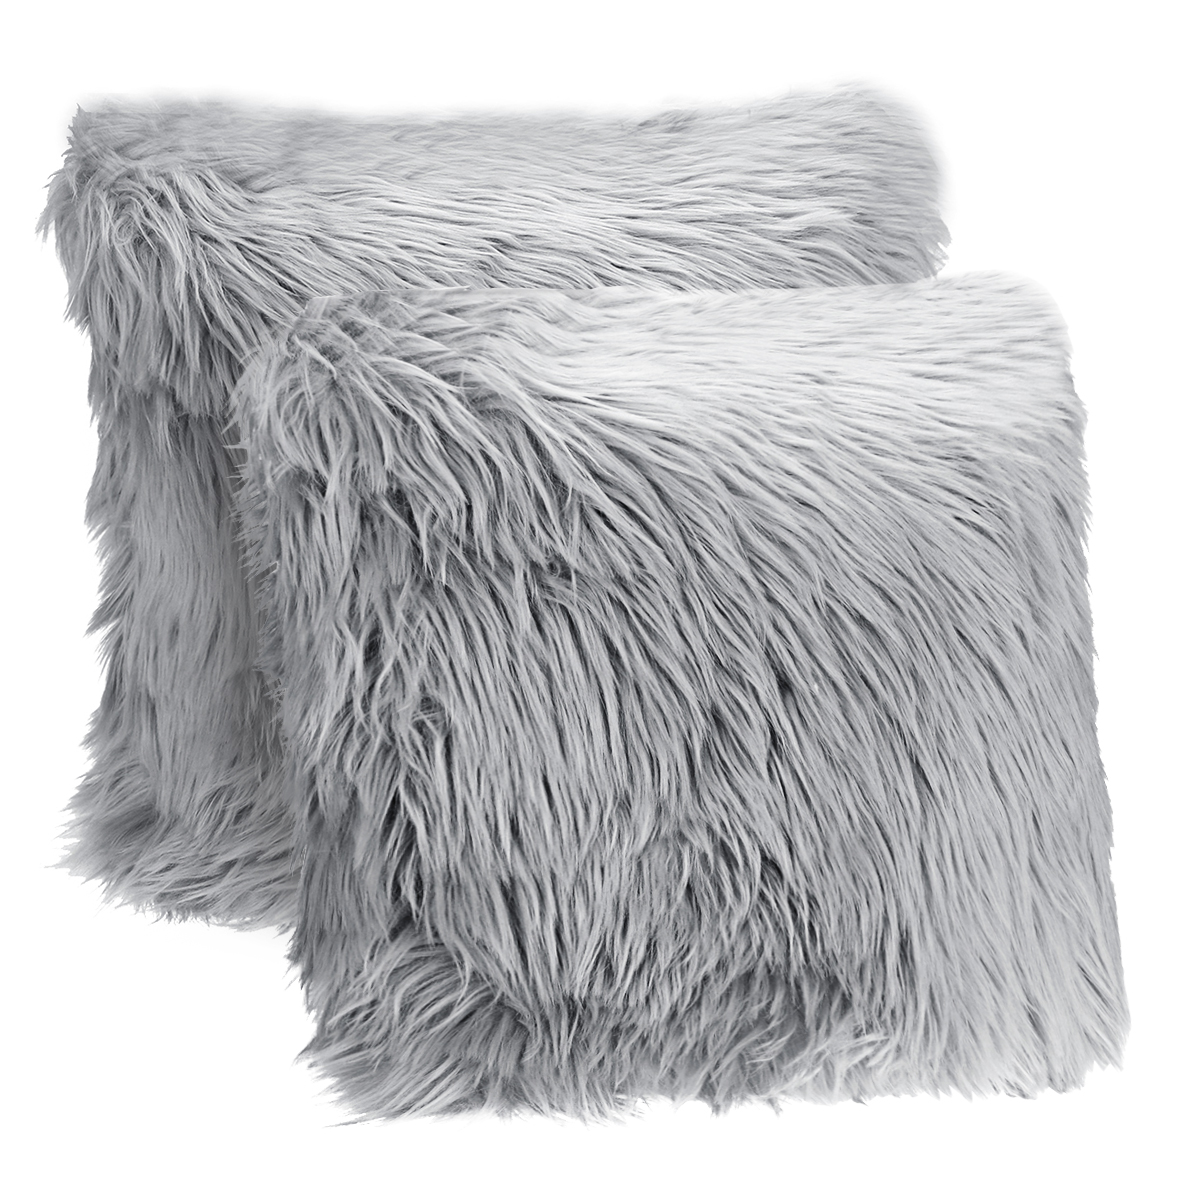 double side plush furry pillowcase faux fur throw pillow covers cushion covers luxury soft decorative fuzzy pillow covers for bed couch grey 18x18